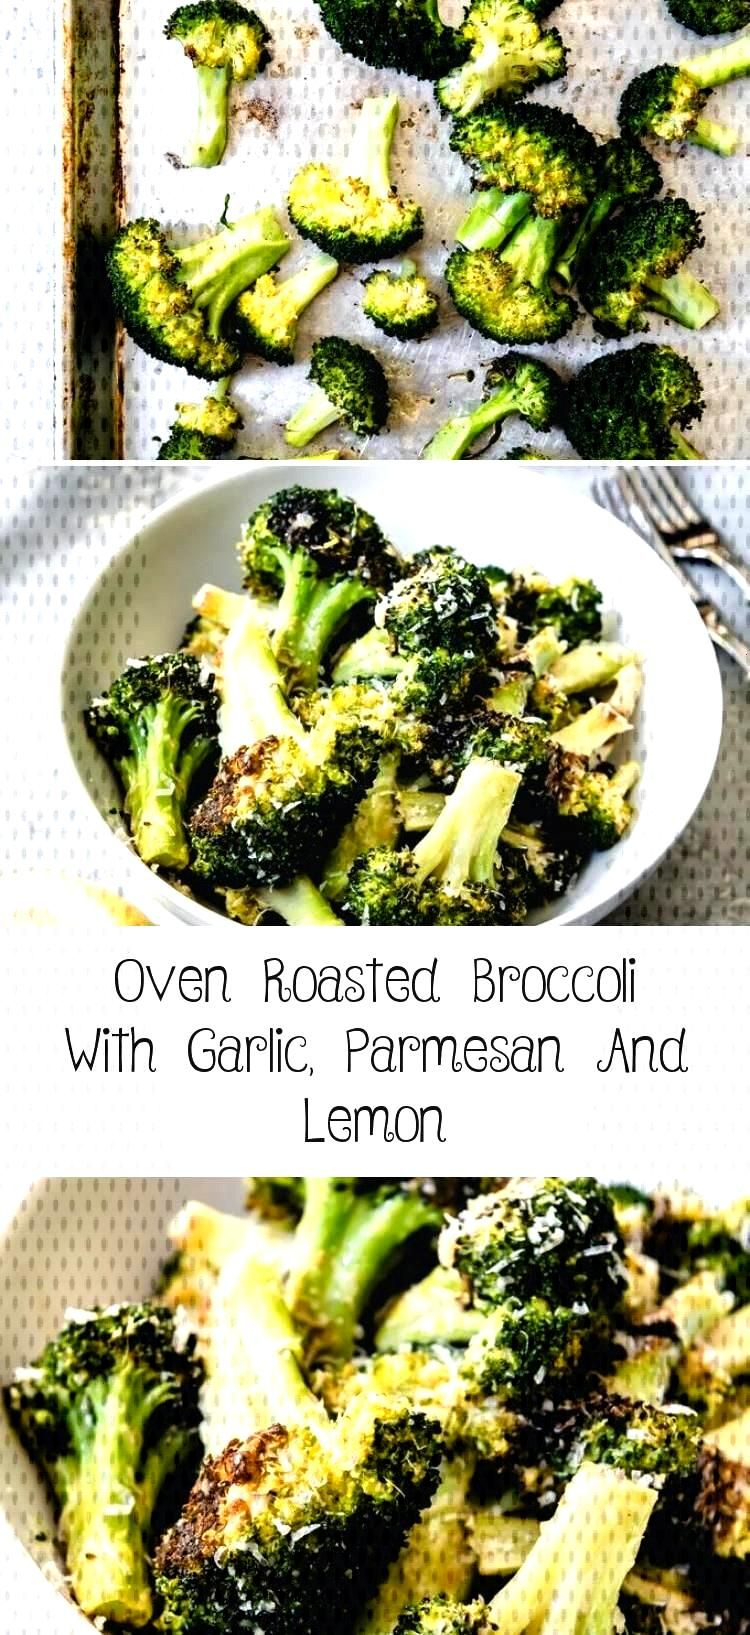 Oven Roasted Broccoli with Garlic, Parmesan and Lemon is a delicious and healthy side dish recipe t